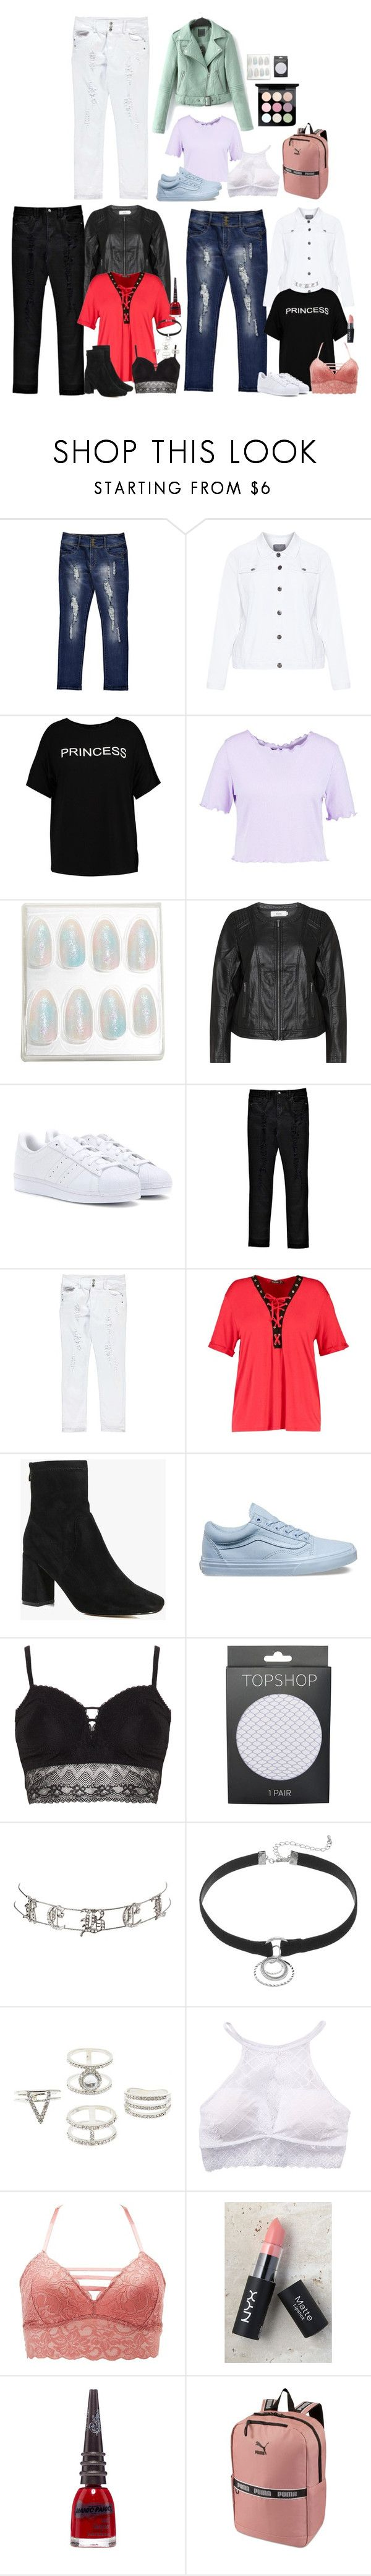 """""""Plus Size Winter Outfits"""" by emmammh ❤ liked on Polyvore featuring Boohoo, Zhenzi, Zizzi, adidas Originals, Vans, Ashley Graham, Topshop, Charlotte Russe, René Rofé and NYX"""